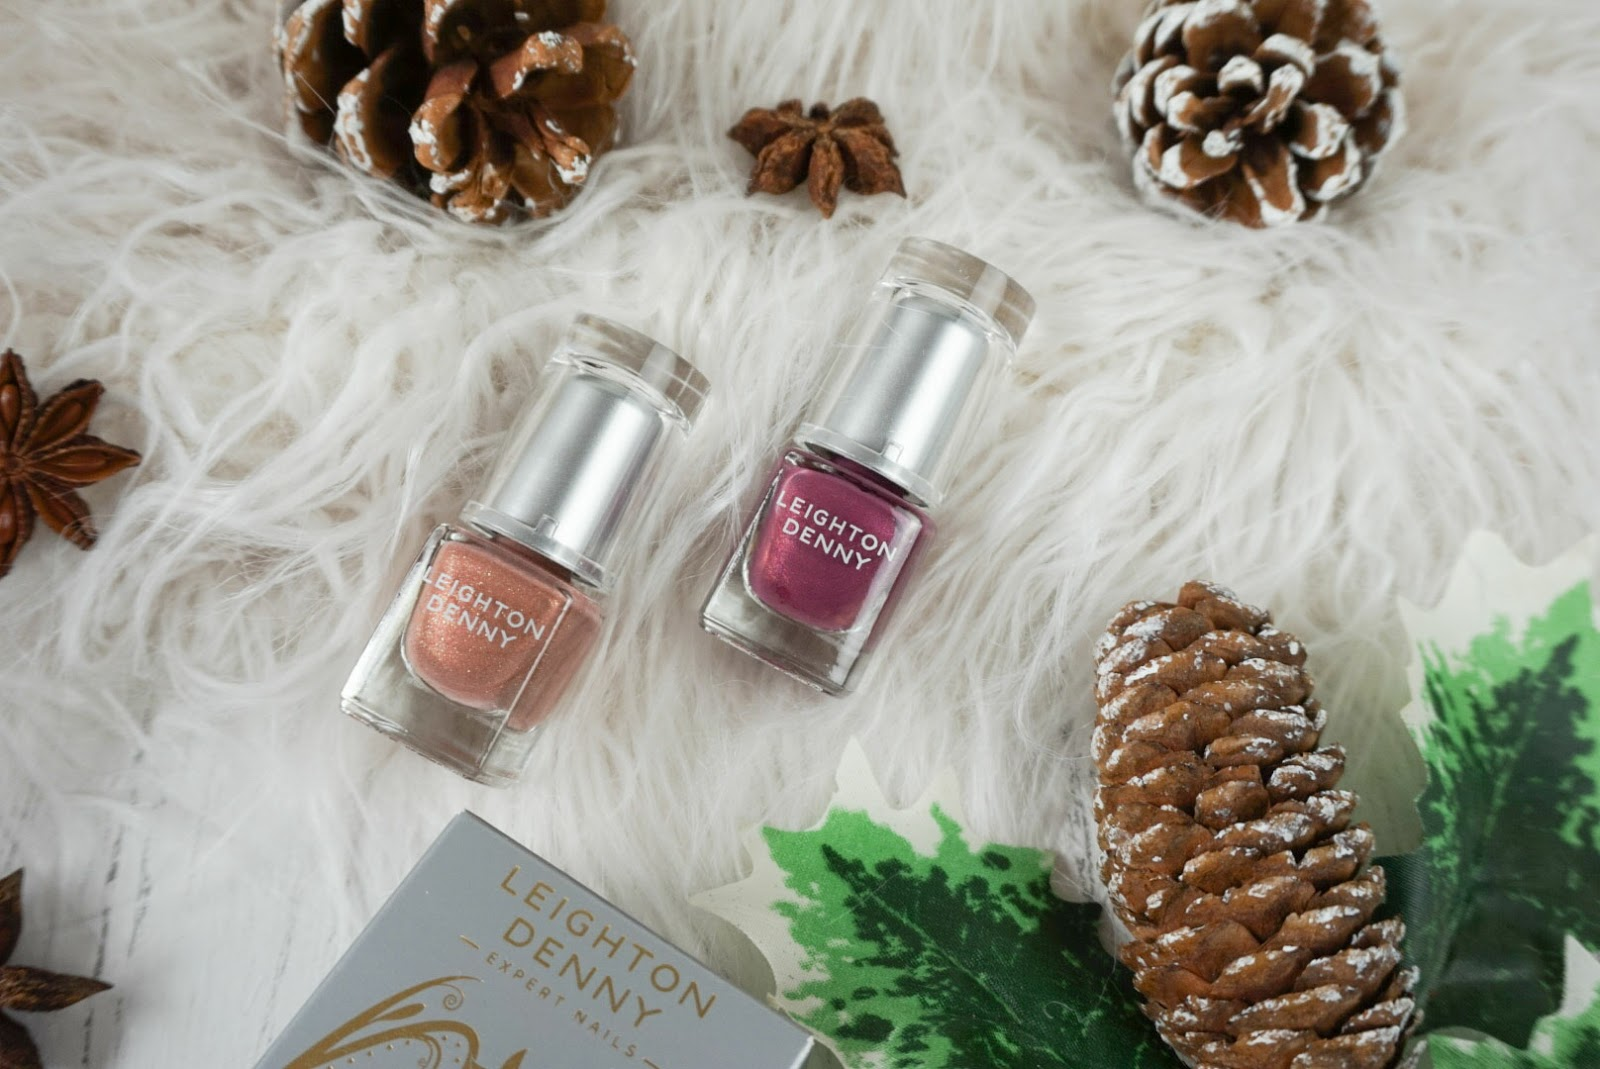 Chistmas| Beauty Stocking Fillers Under £25 Two Of A Kind: Real Treasure & Down Memory Lane by Leighton Denny Nail Polish